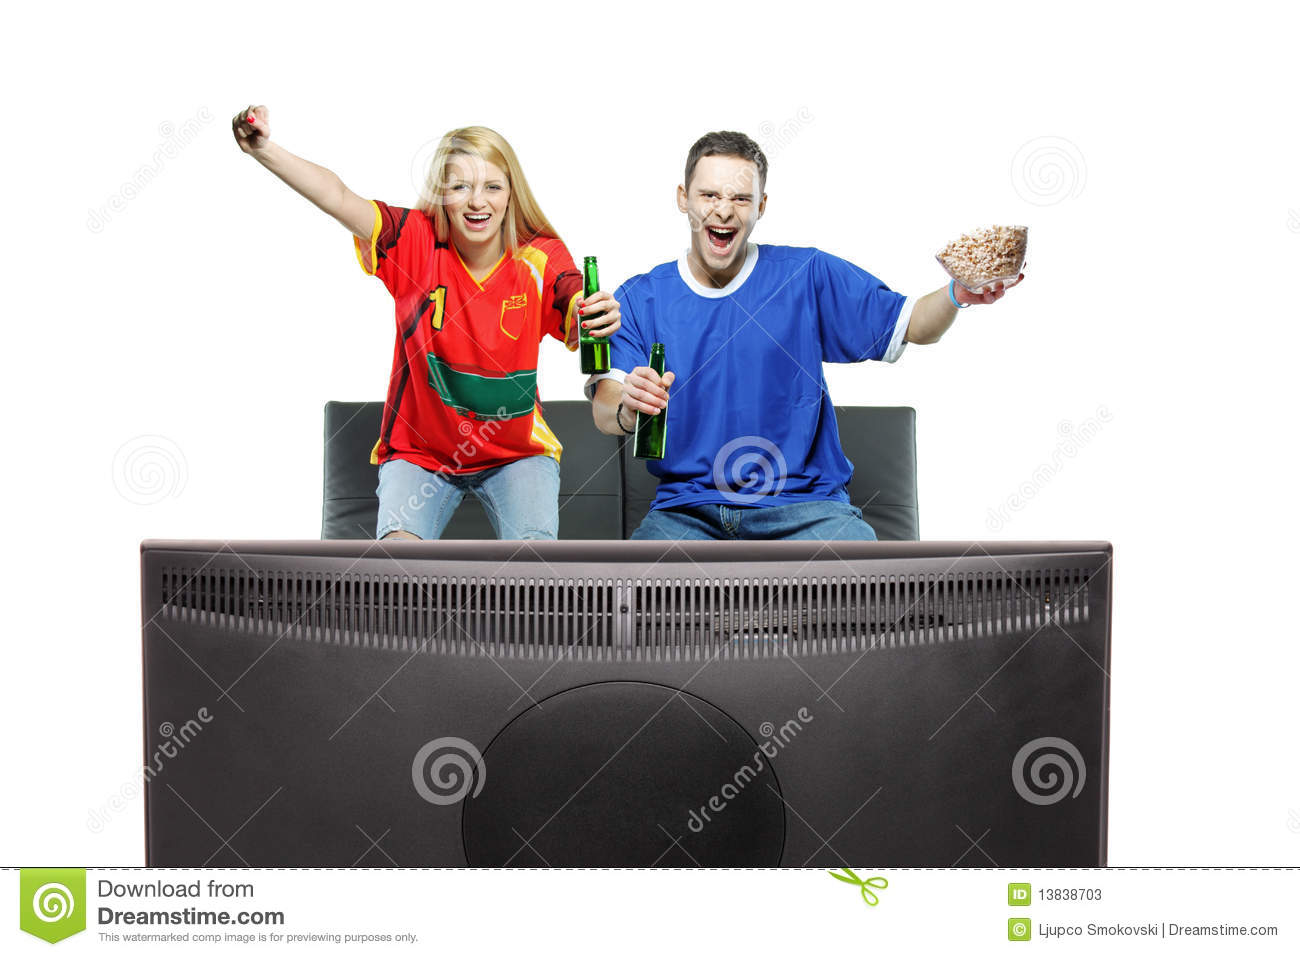 Excited man and woman watching sport on a TV